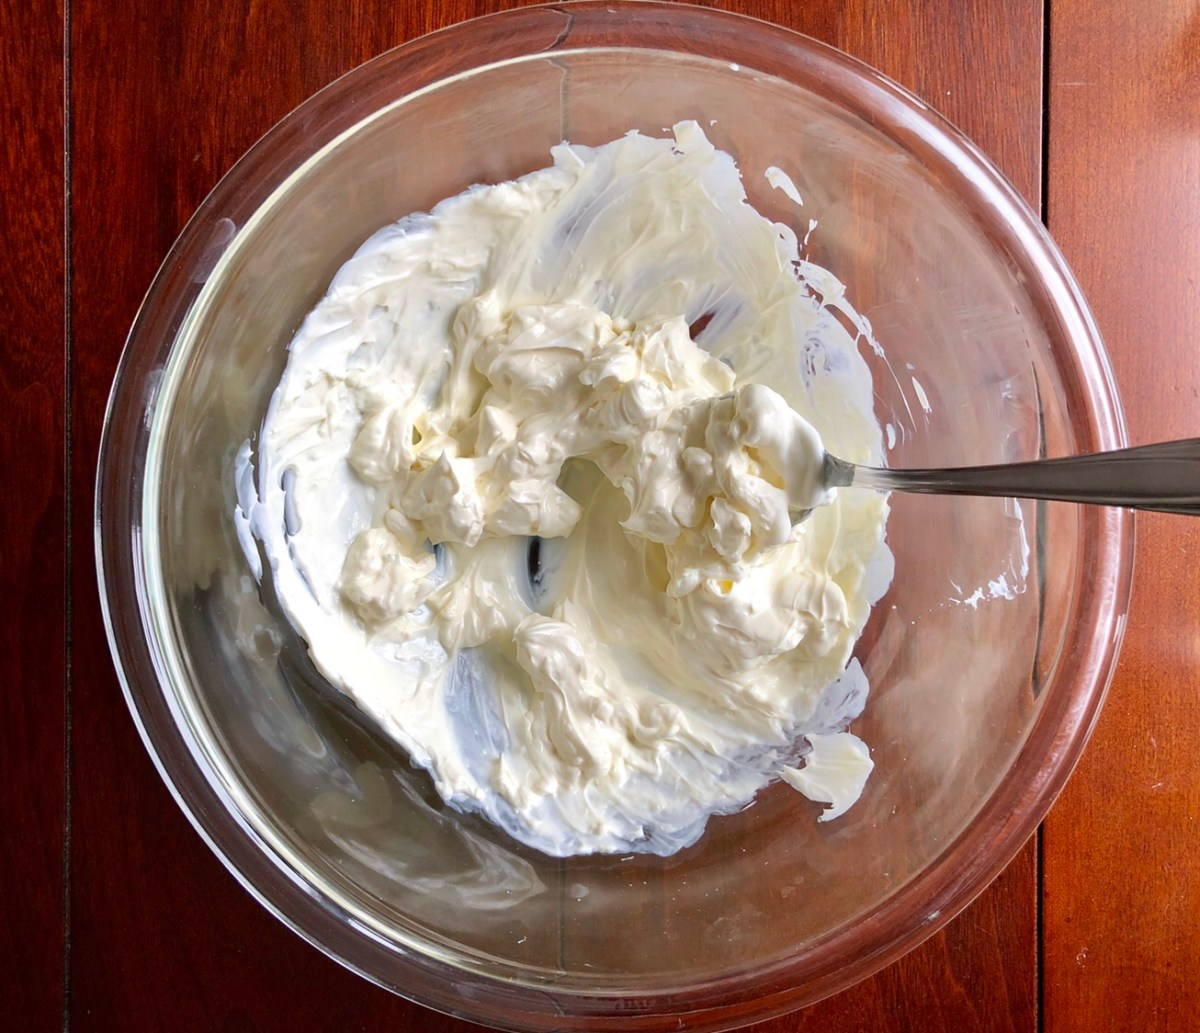 Heat cream cheese in a microwave safe bowl for 1 minute.